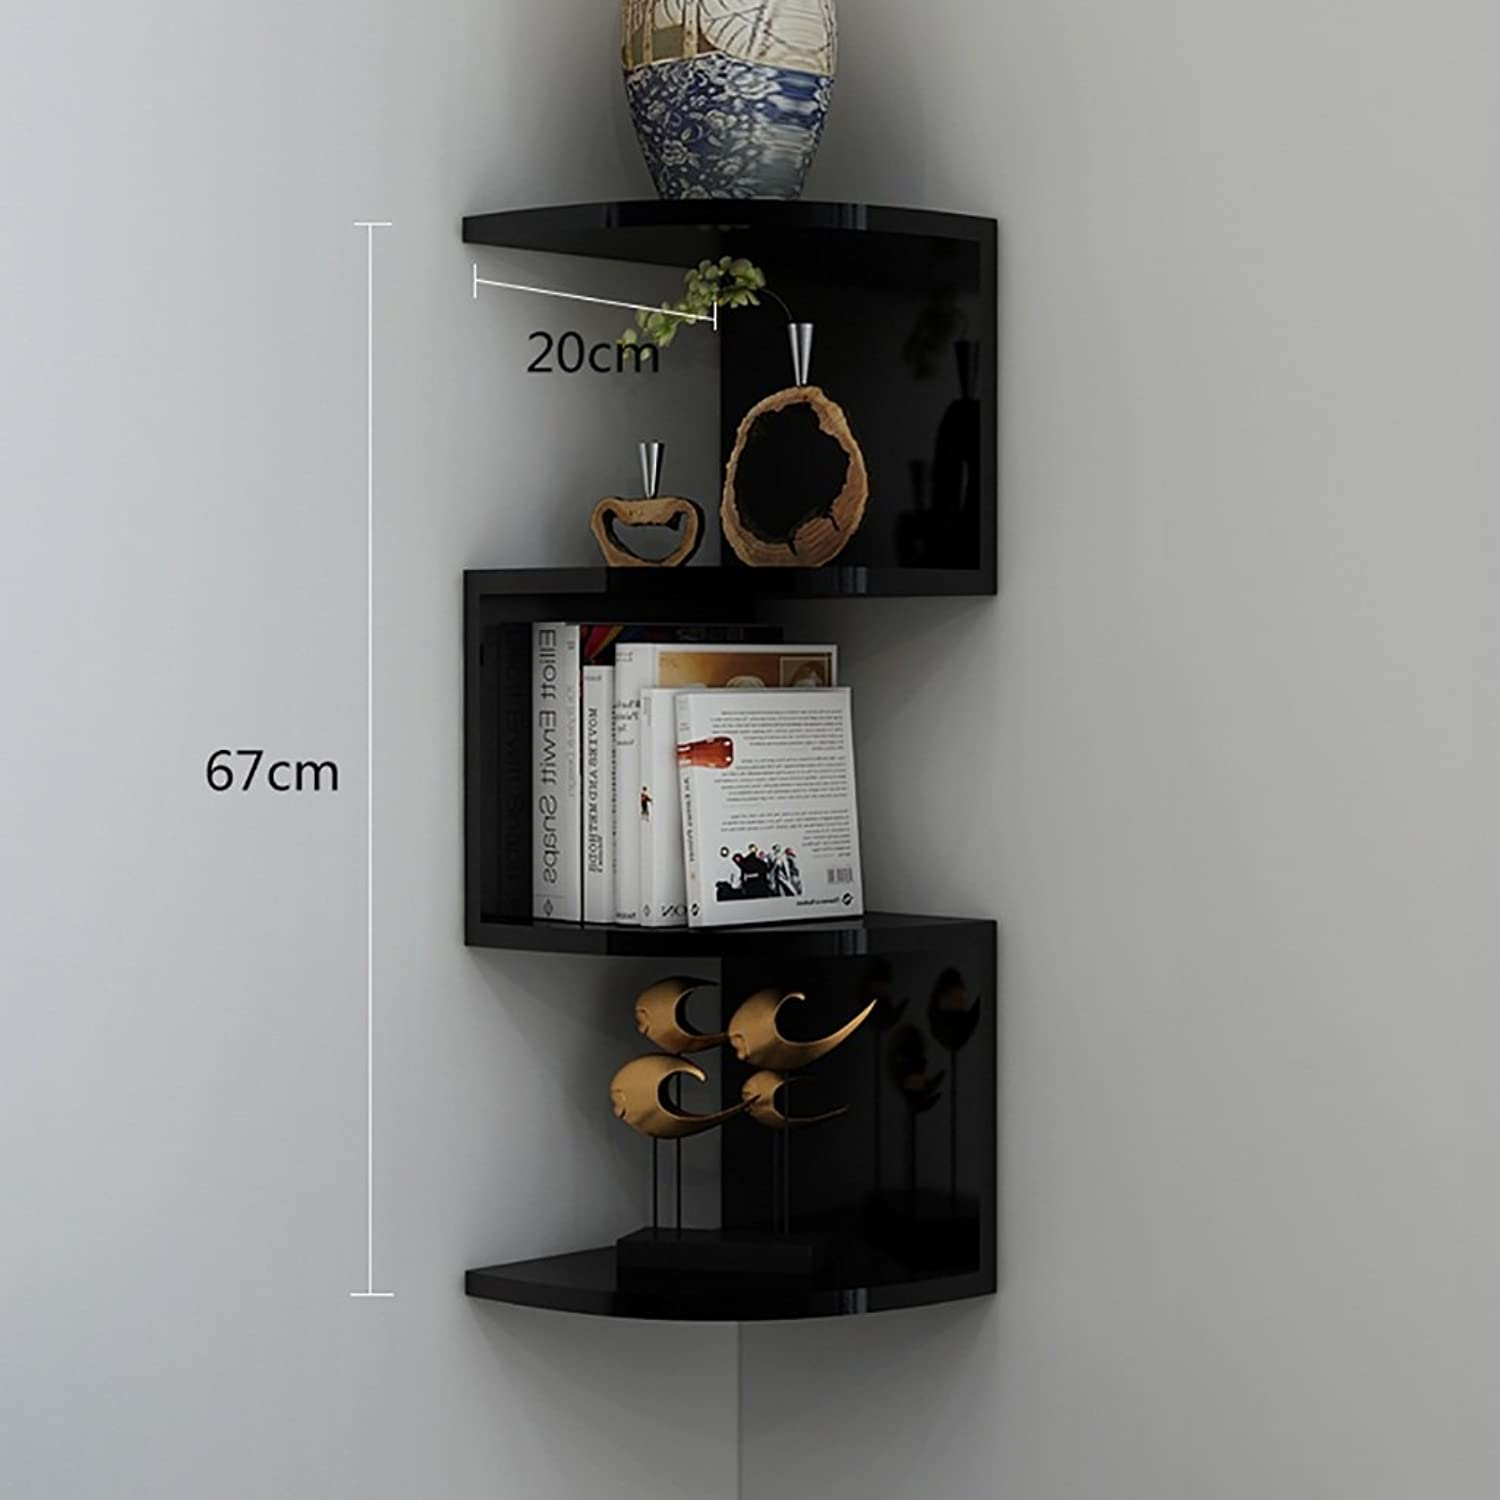 Decorative Accessories White Shelves on The Wall, Wall Racks, Wall Angle Planes, White Decorative Display Stand Floating Shelves (color   Black)